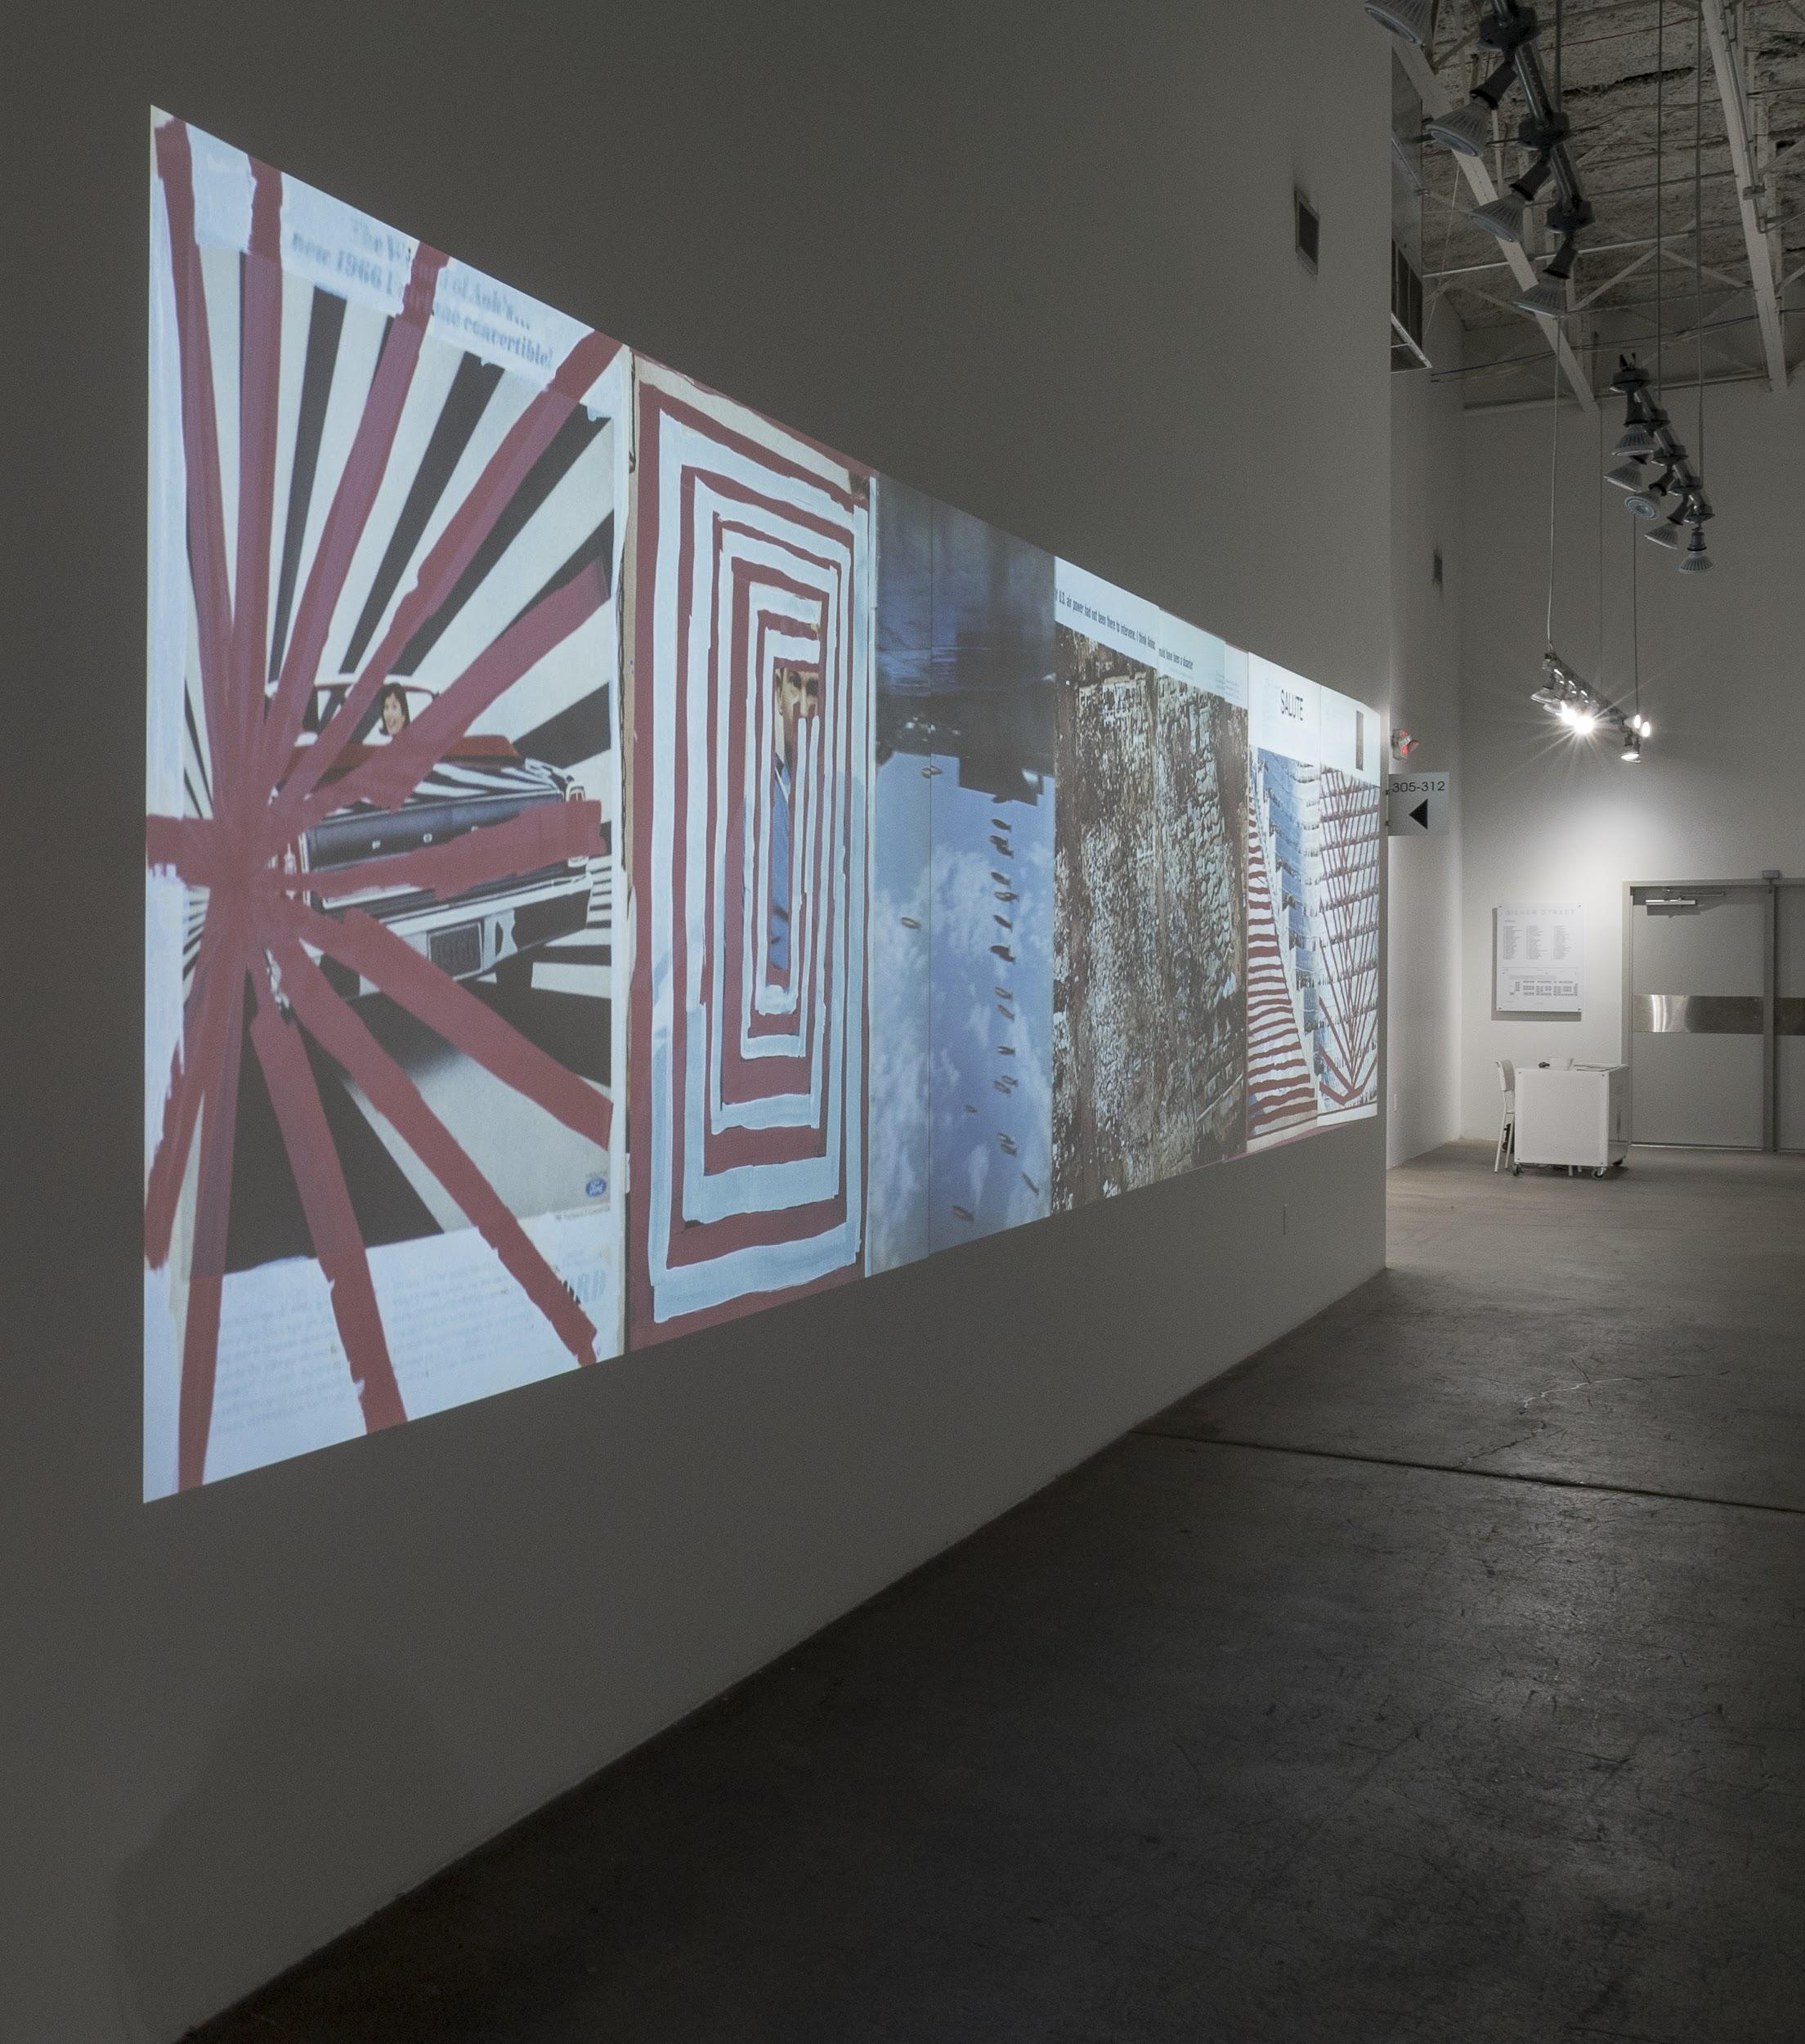 Drew Bacon's Life installation view